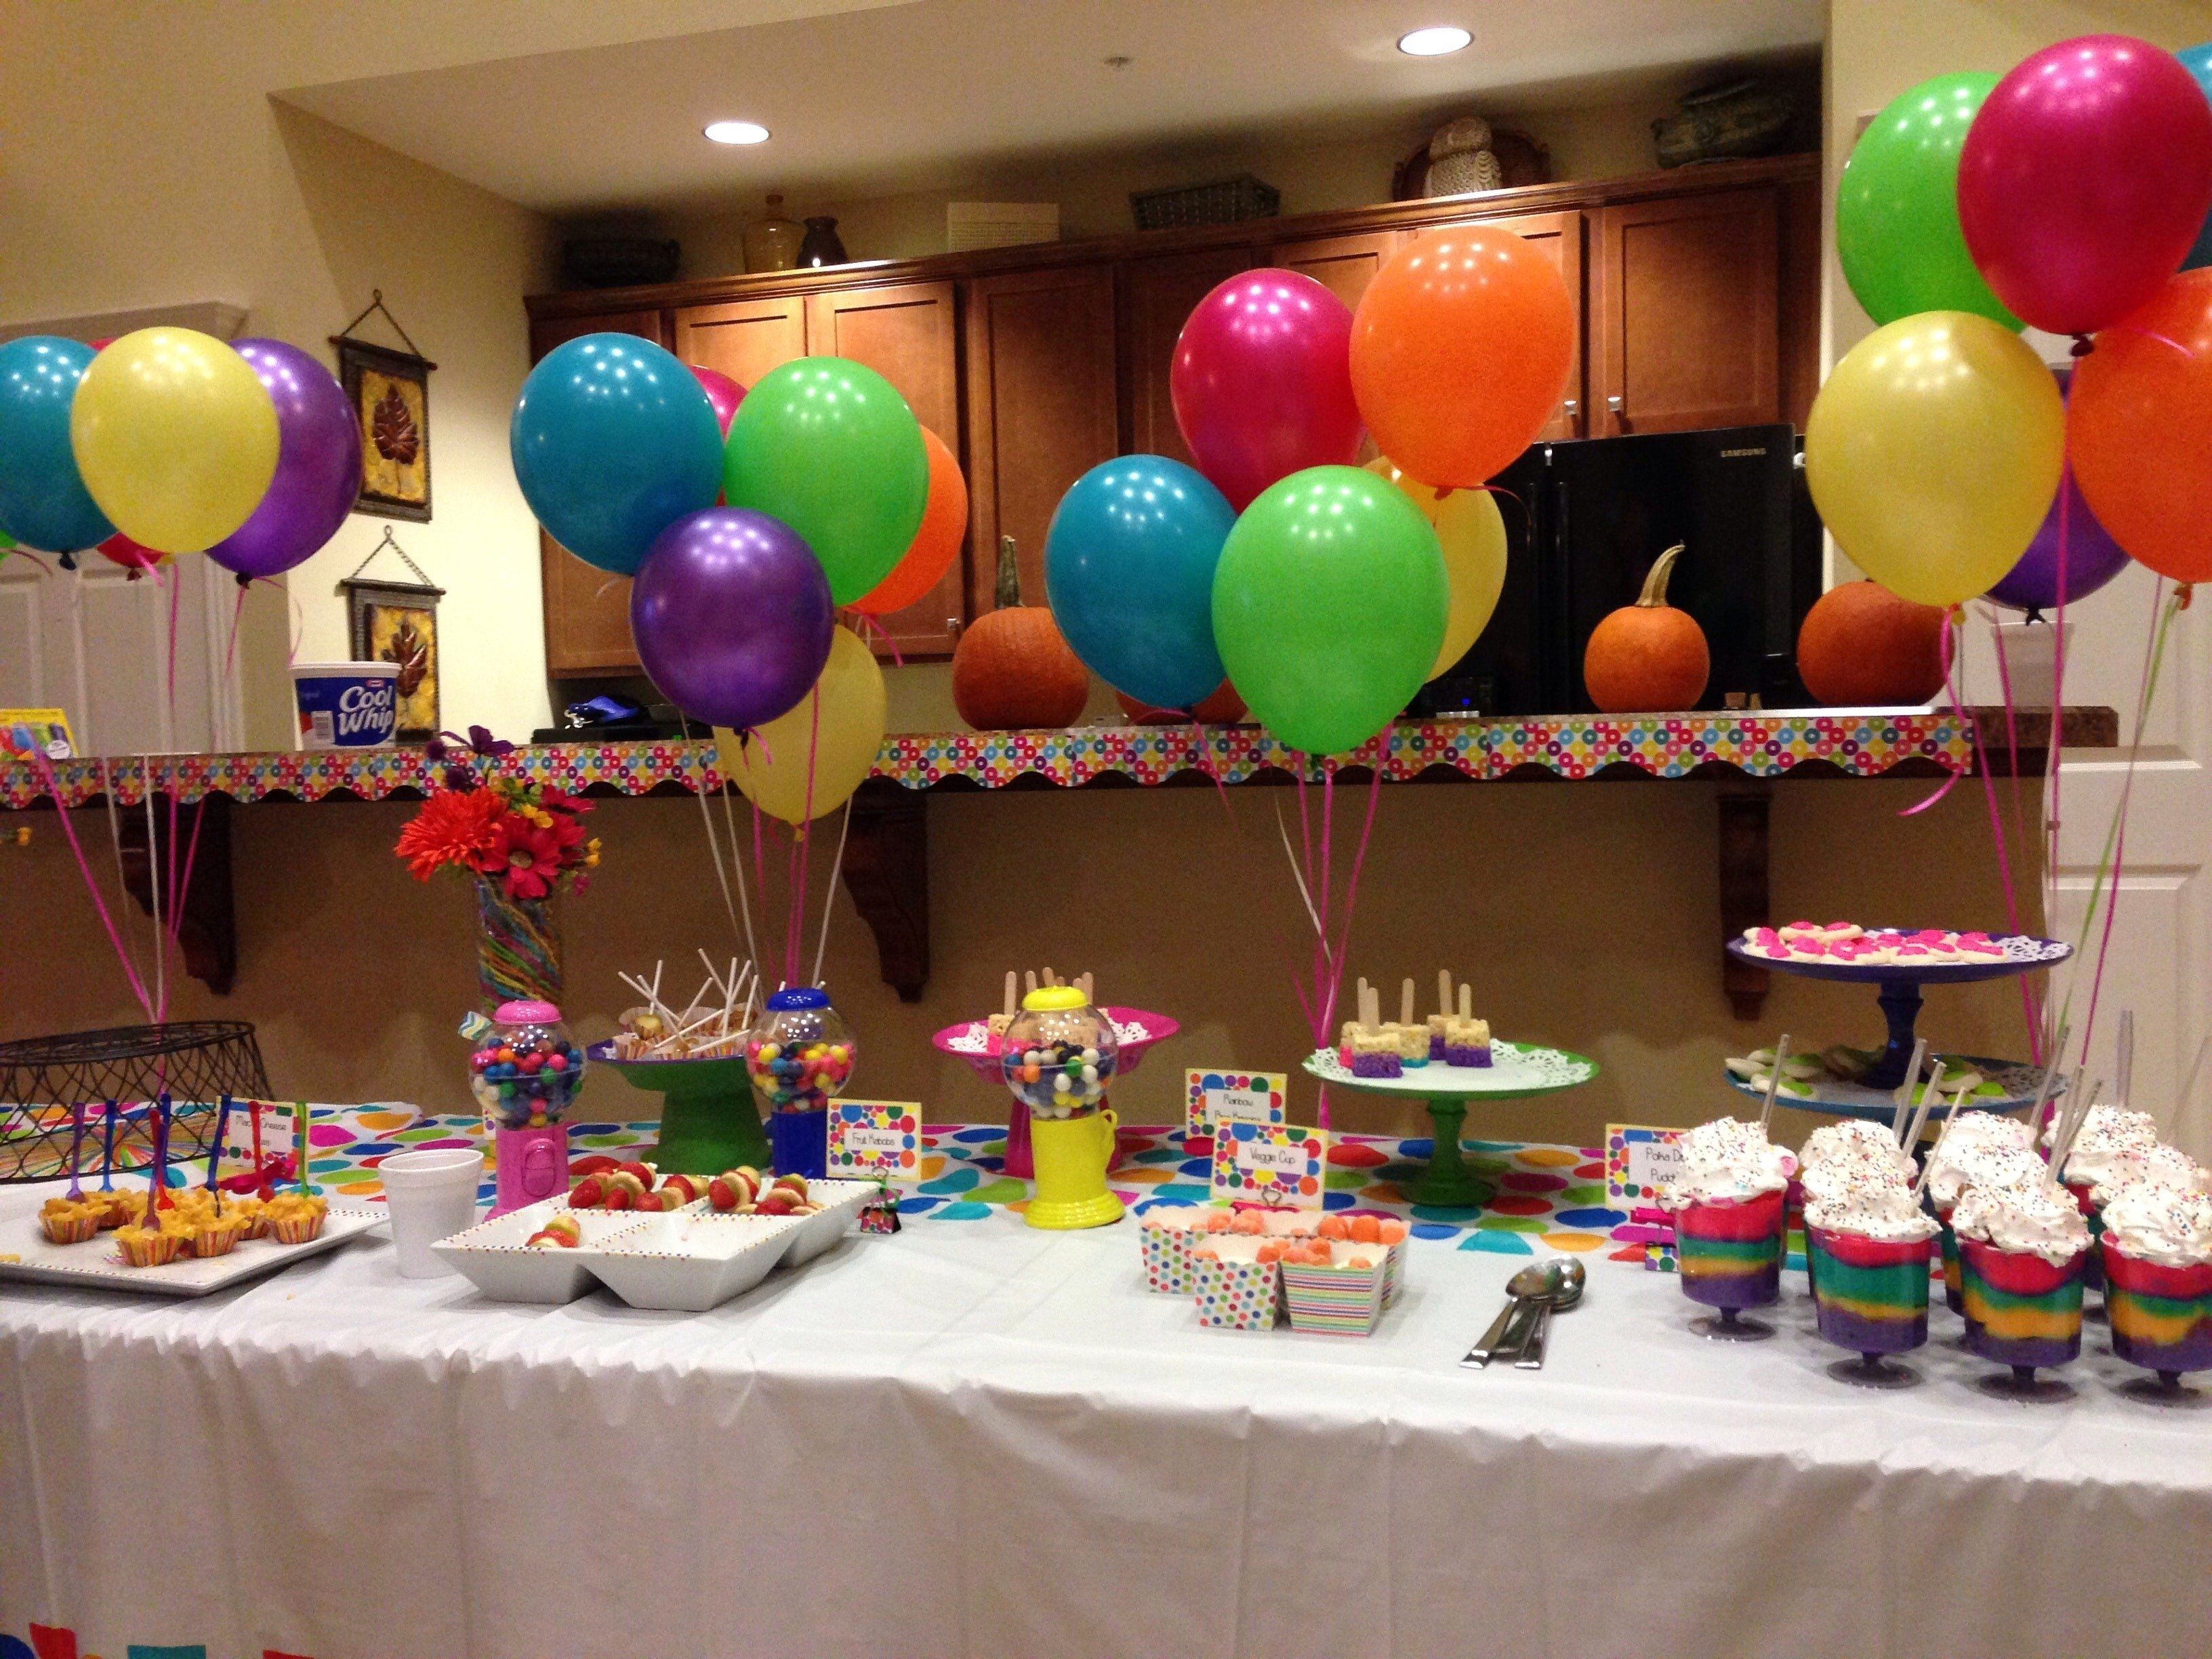 10 Elegant Four Year Old Birthday Party Ideas 24 superb architecture above 4 year old birthday party that yourself 1 2020